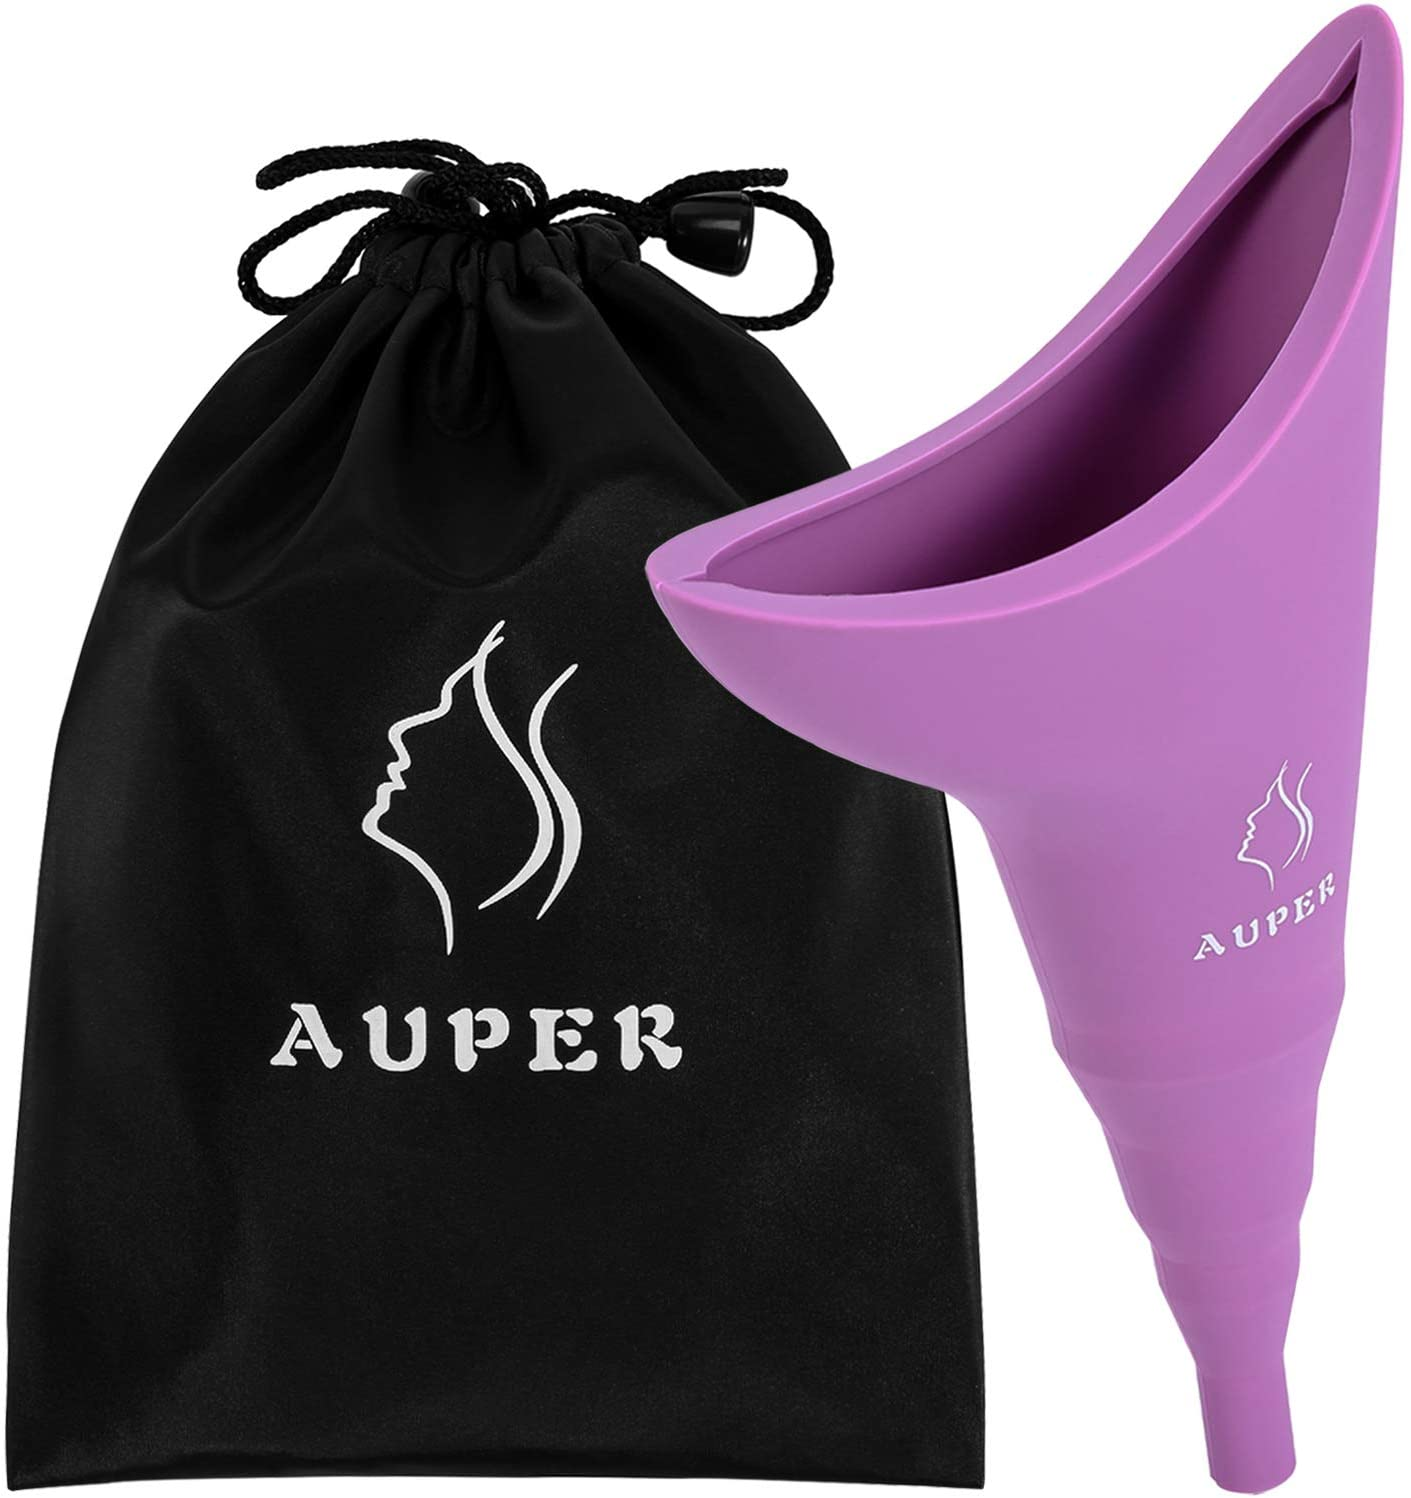 AUPER Female Urination Device, Reusable Medical Silicone Female Urinal for Women Pee Like a Man, Foolproof Portable Womens Pee Funnel for Travel, Festivals, Camping and More with Carry Bag